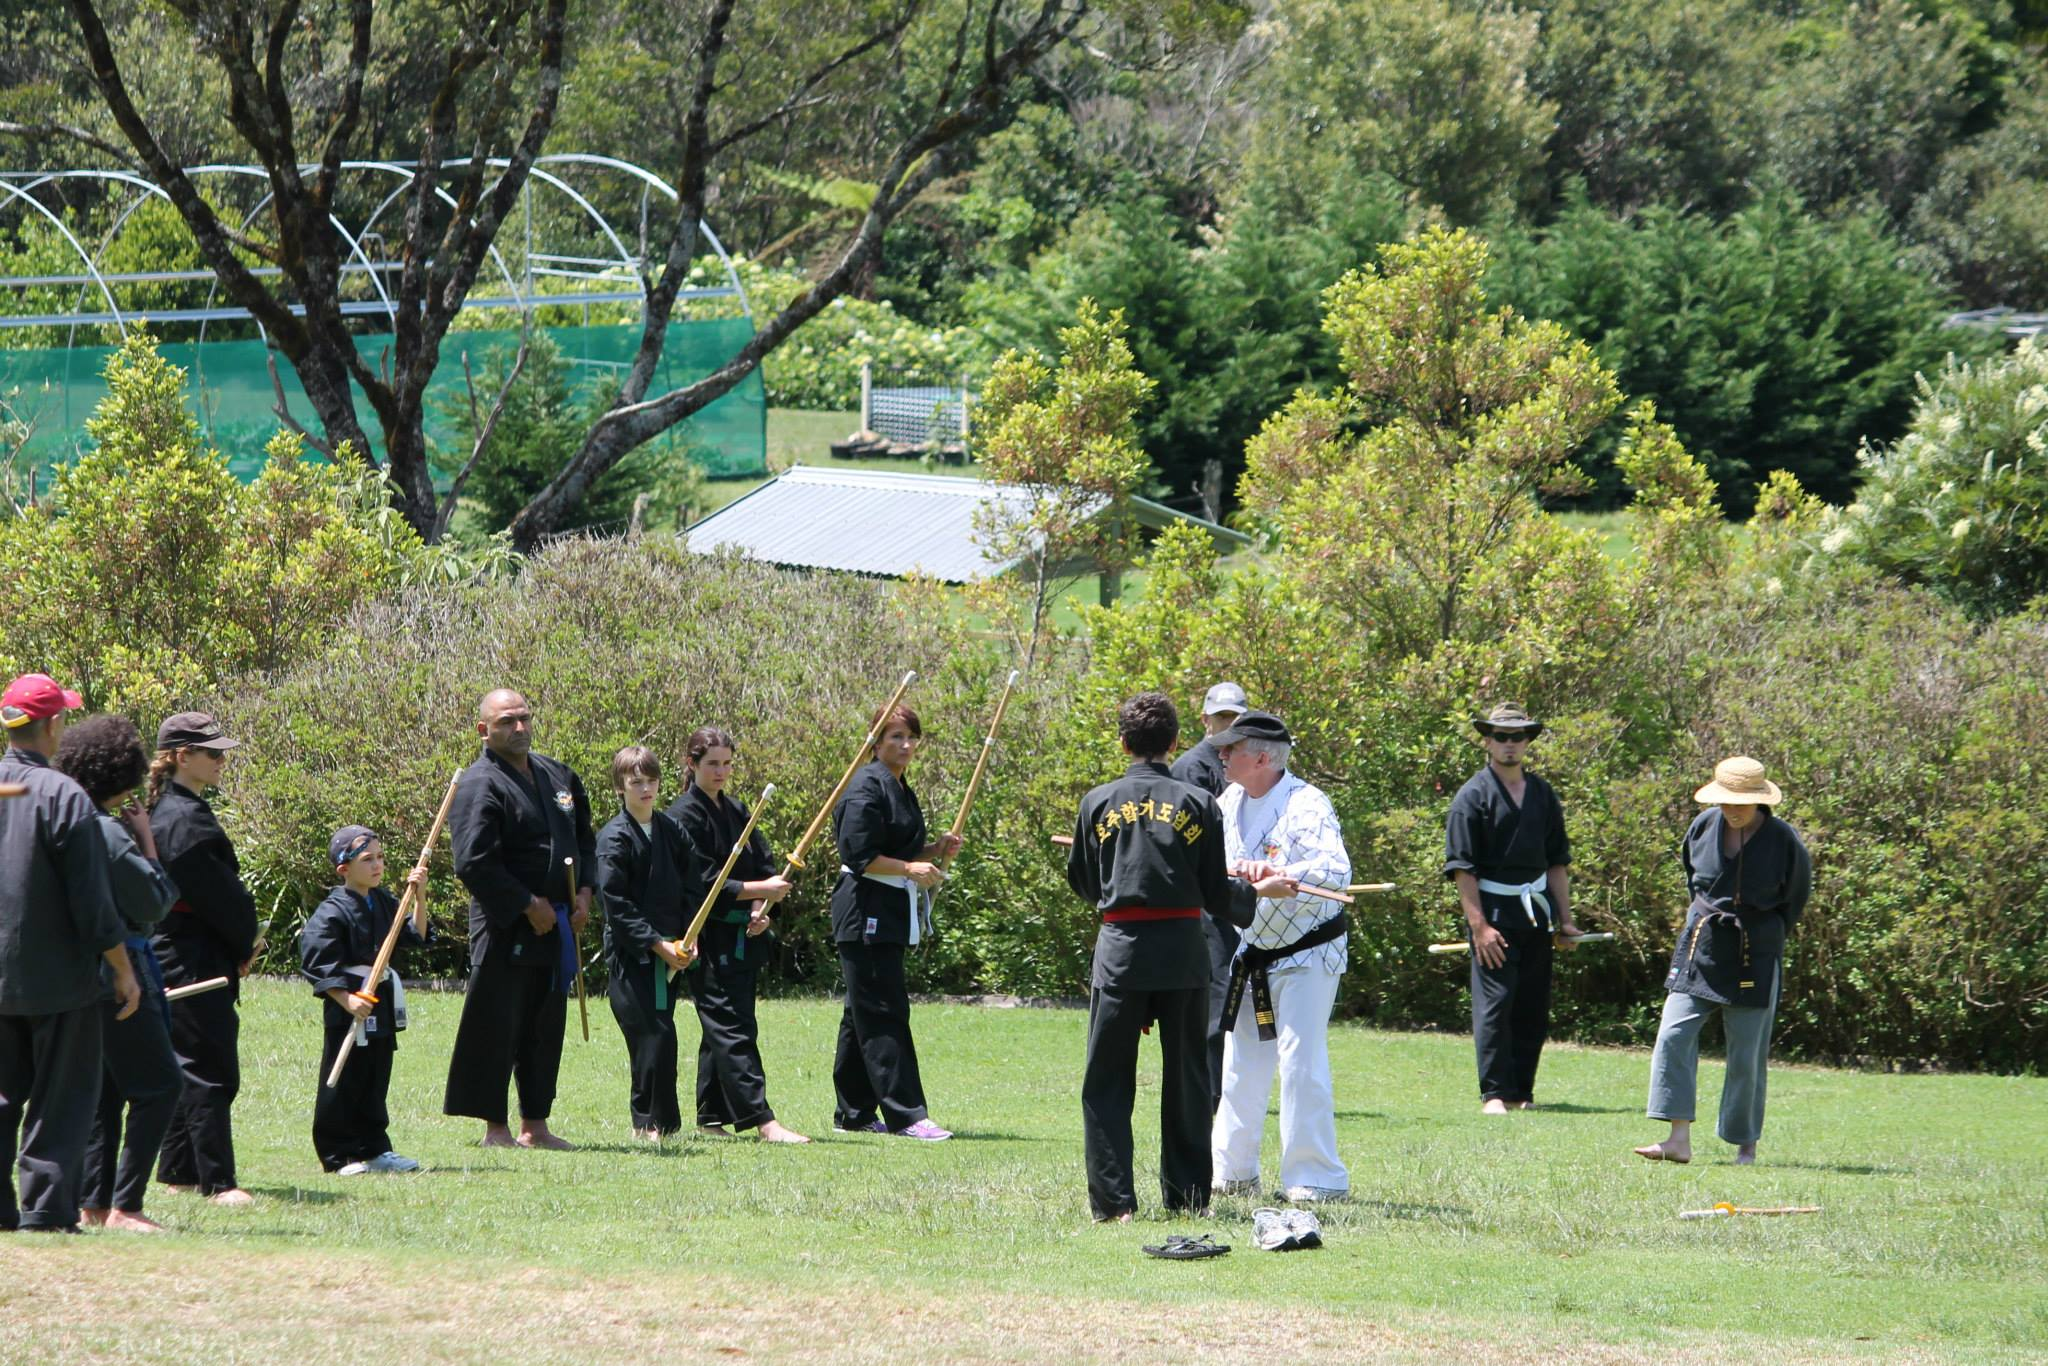 Hapkido training on the sports field